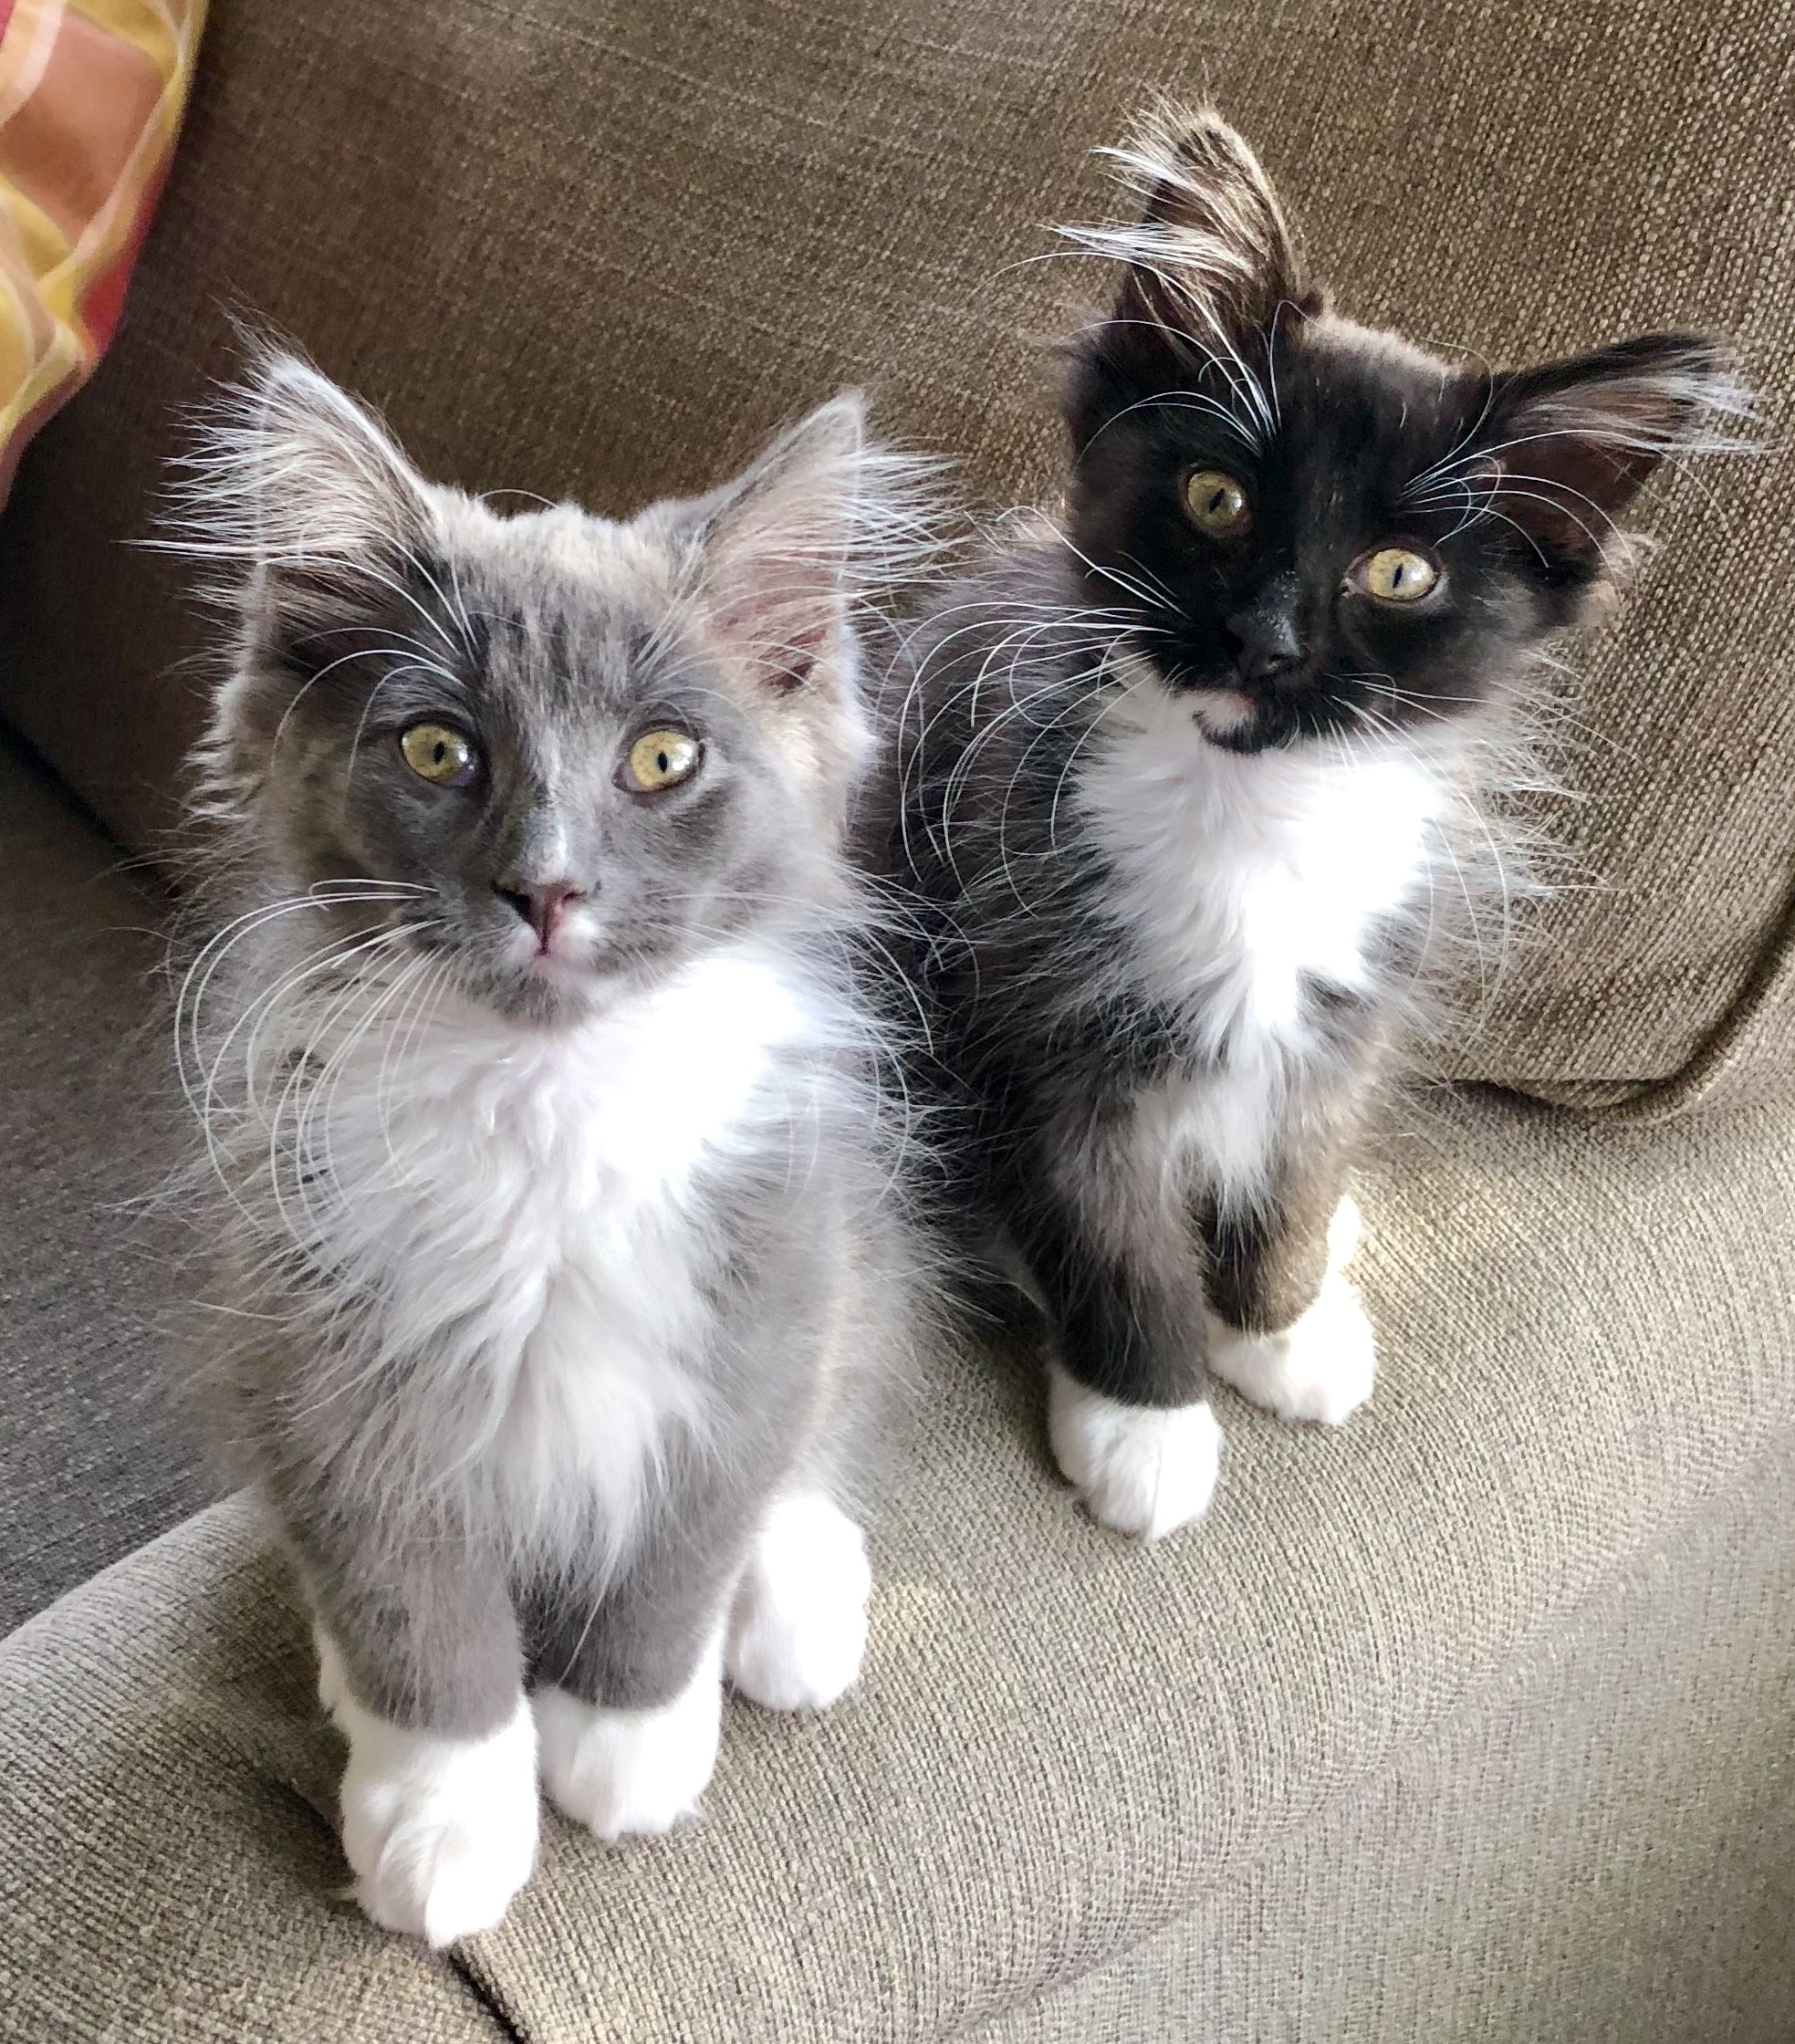 Cute kittens Gray and Black Tuxedo Domestic Longhair cats Spike